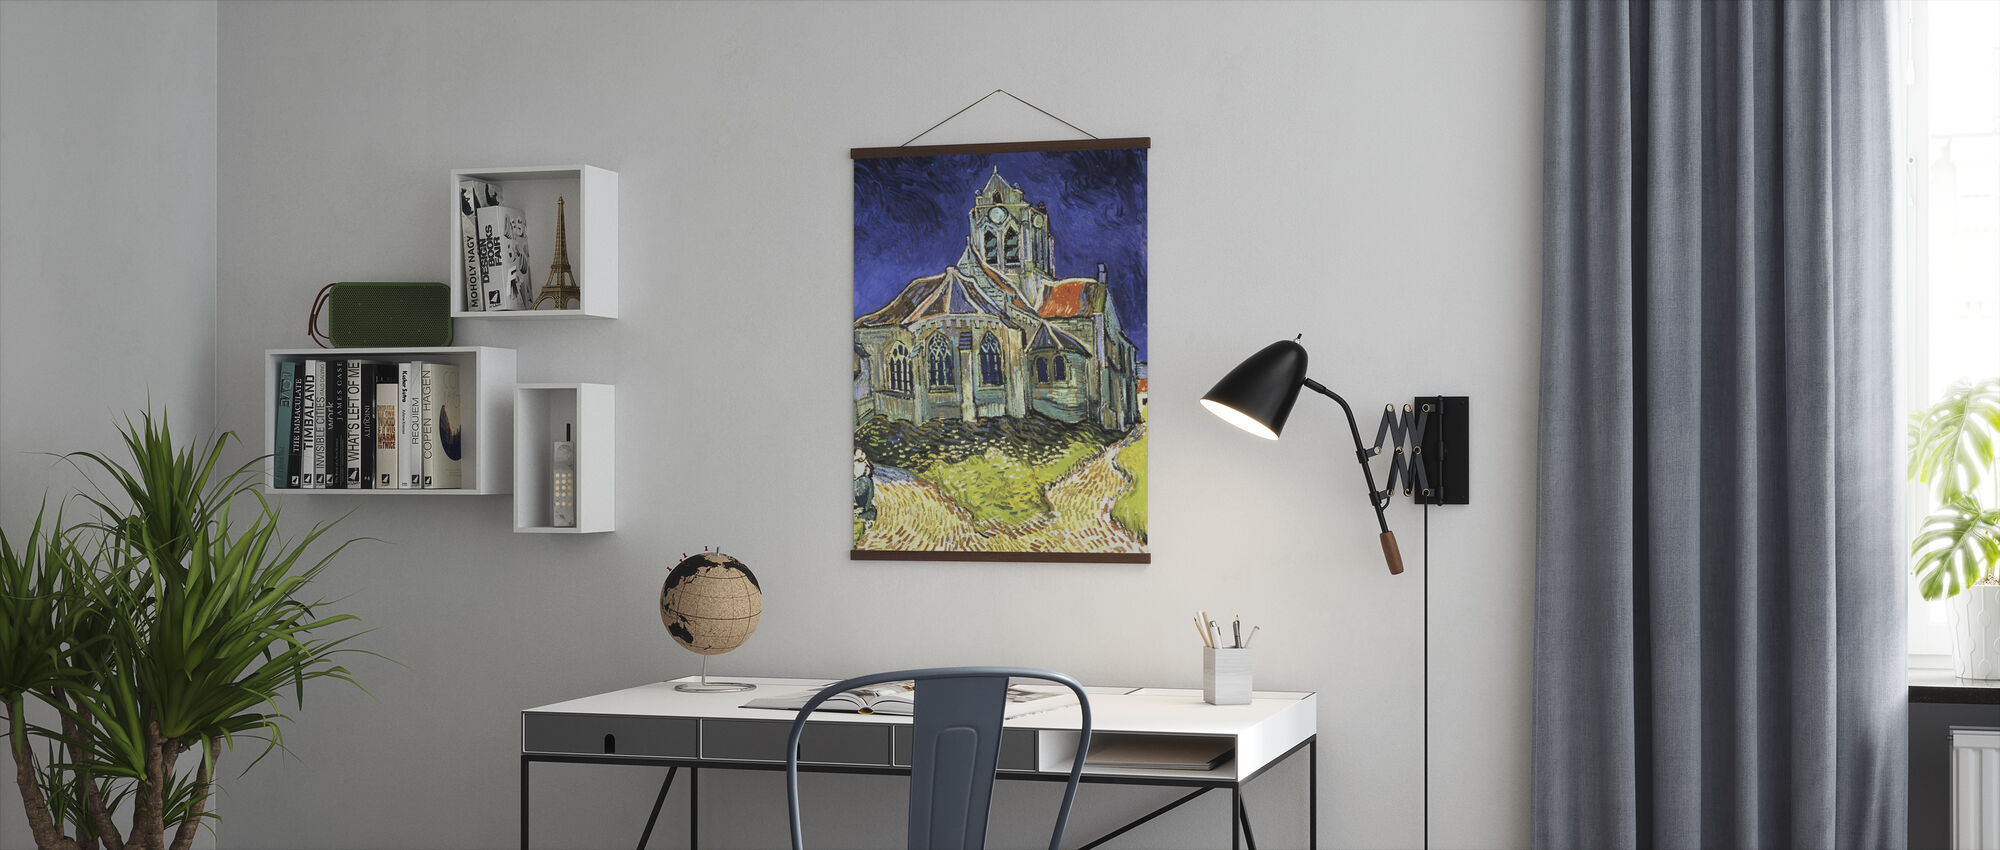 Church at Auvers-sur-Oise - Vincent van Gogh - Poster - Office